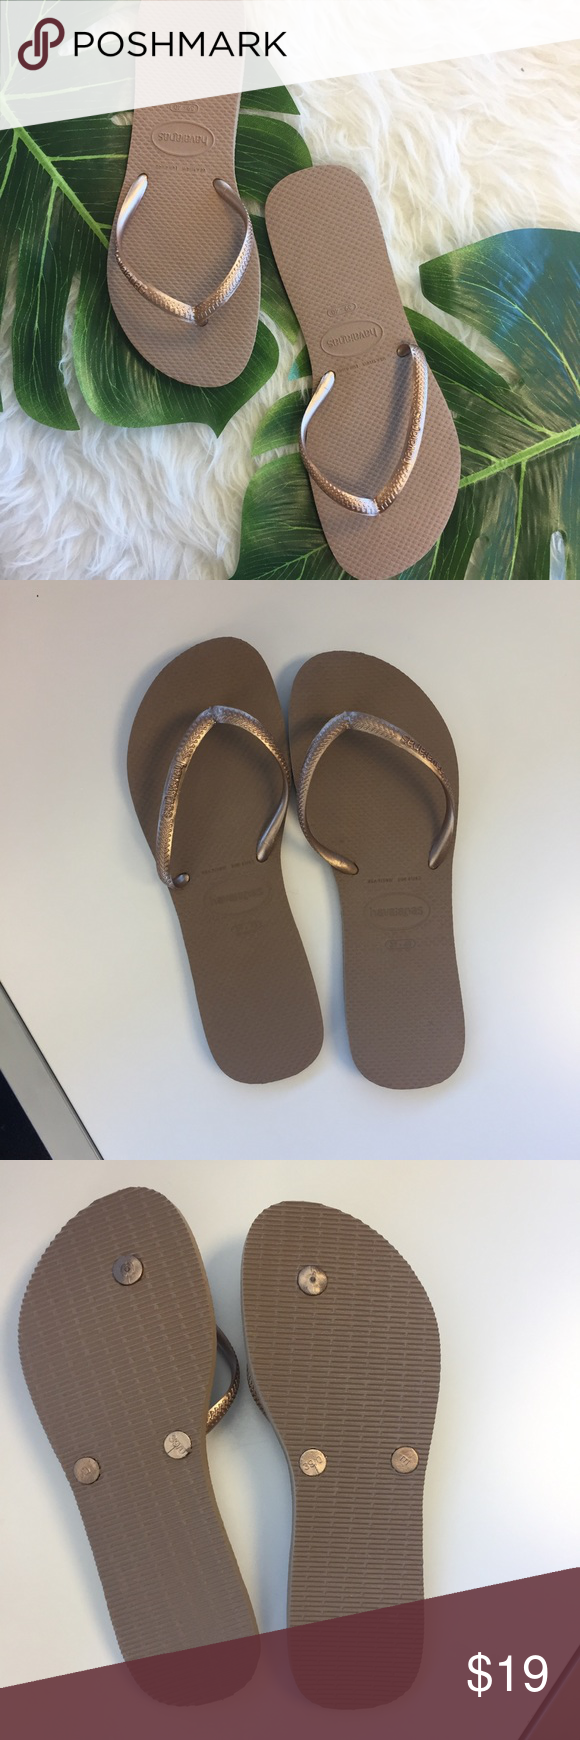 4effe4c19ed Bronze havaianas rubber flip flops (slender cut) Worn once. Perfect  condition bronze cold color rubber havaianas flip flops. Slender more  feminine cut.